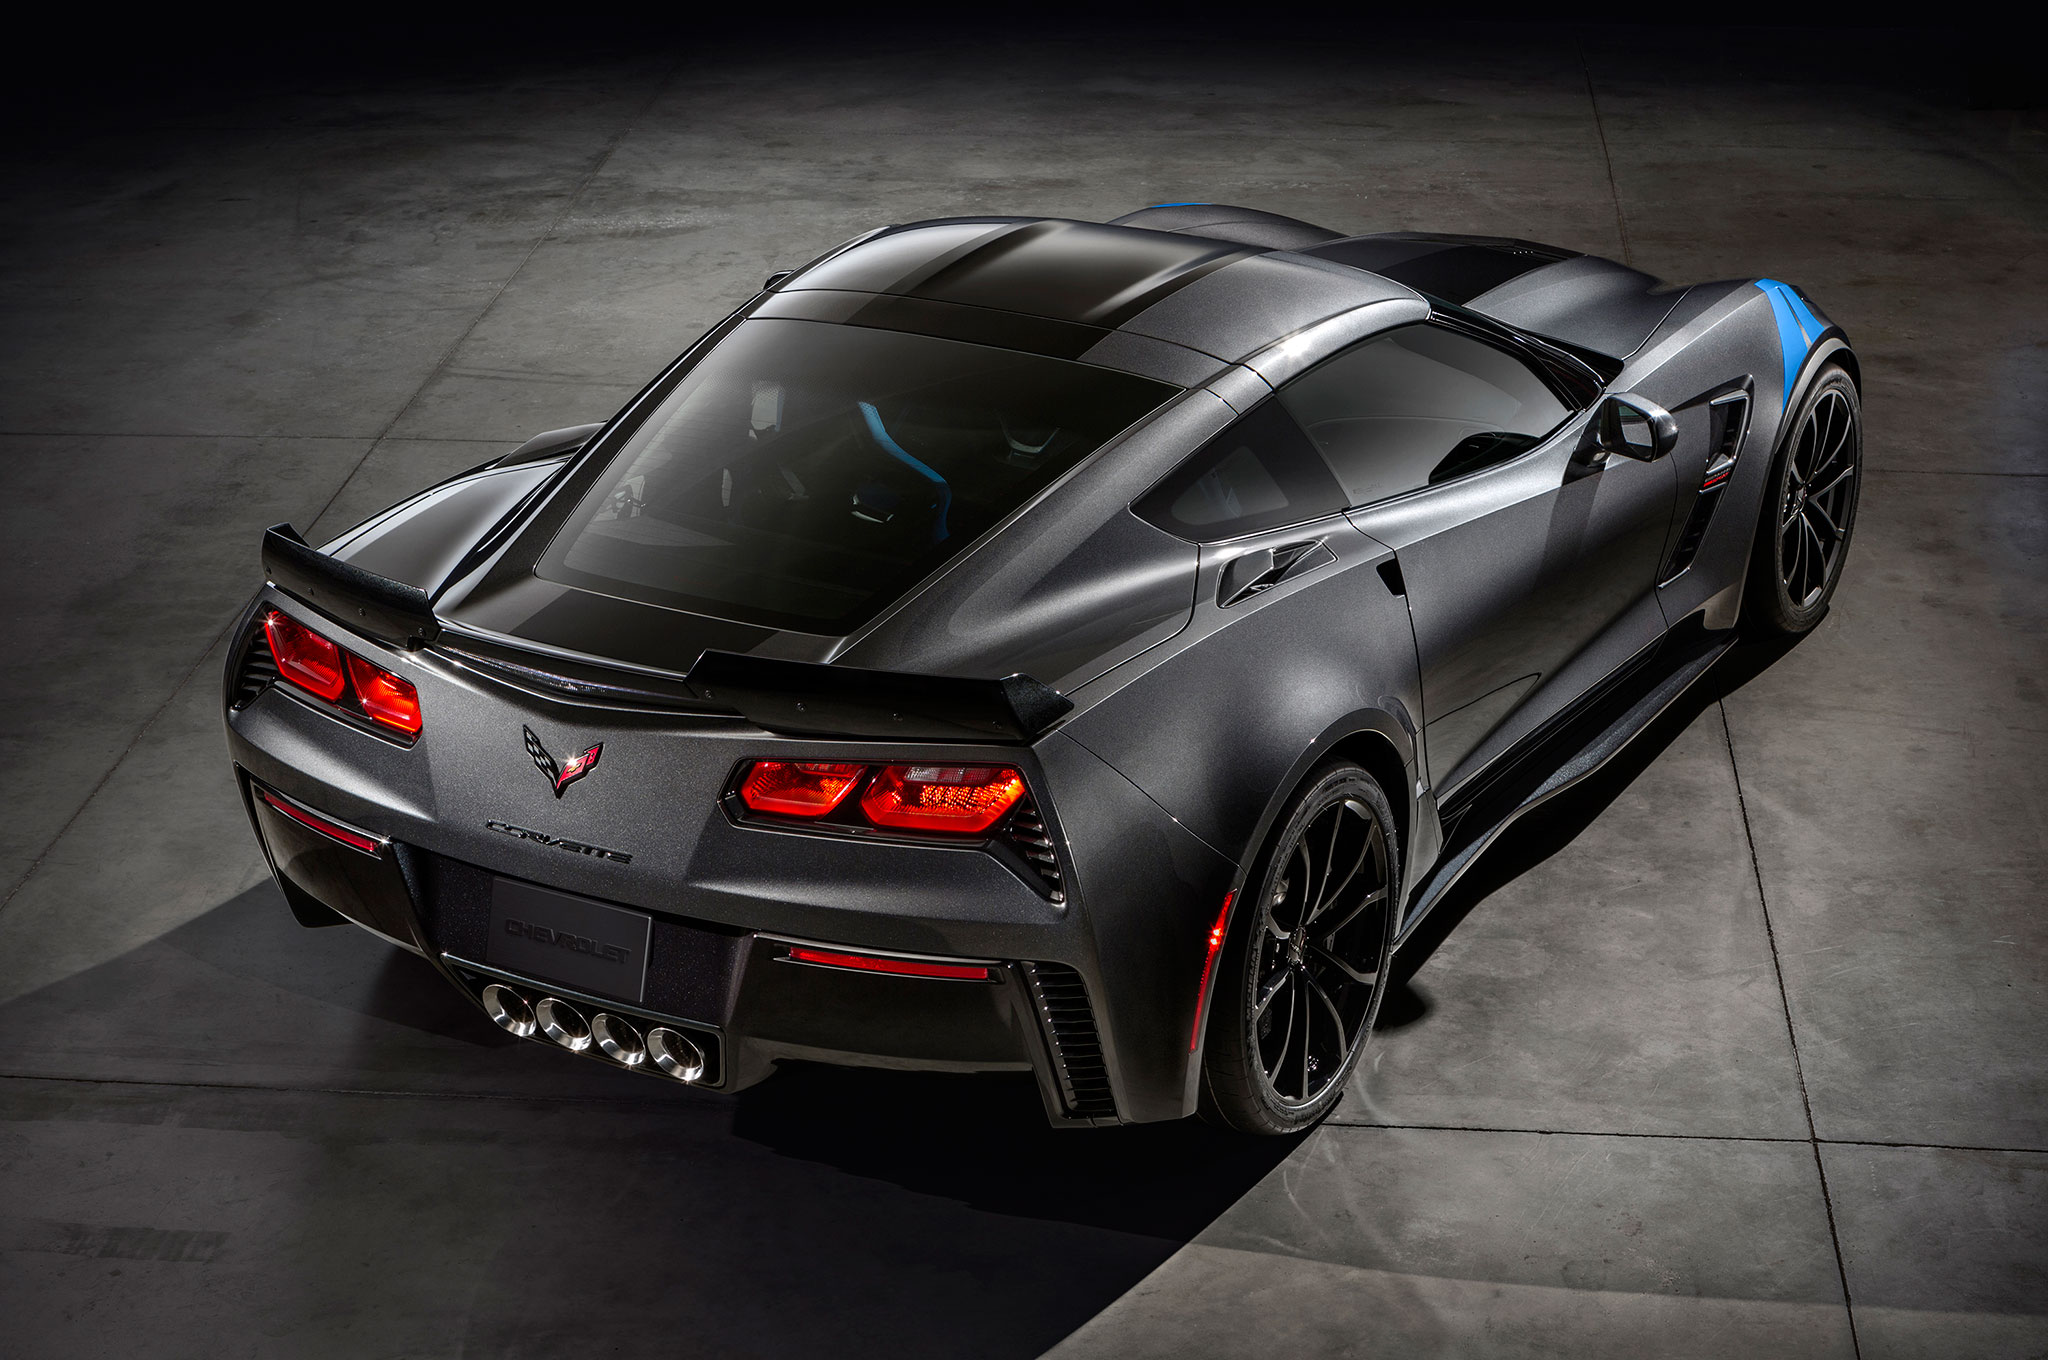 Bon 2015 Chevrolet Corvette Z06 Convertible. Beau Automobile Magazine